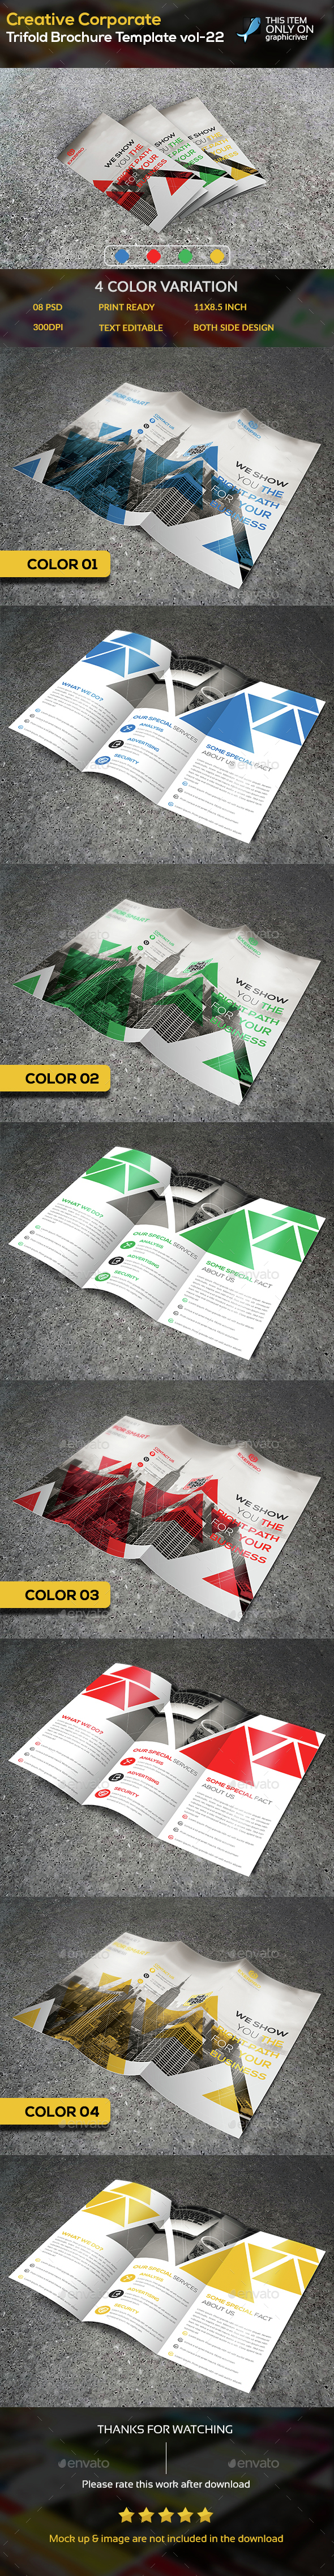 Creative Corporate Trifold Brochure Template -22 - Brochures Print Templates